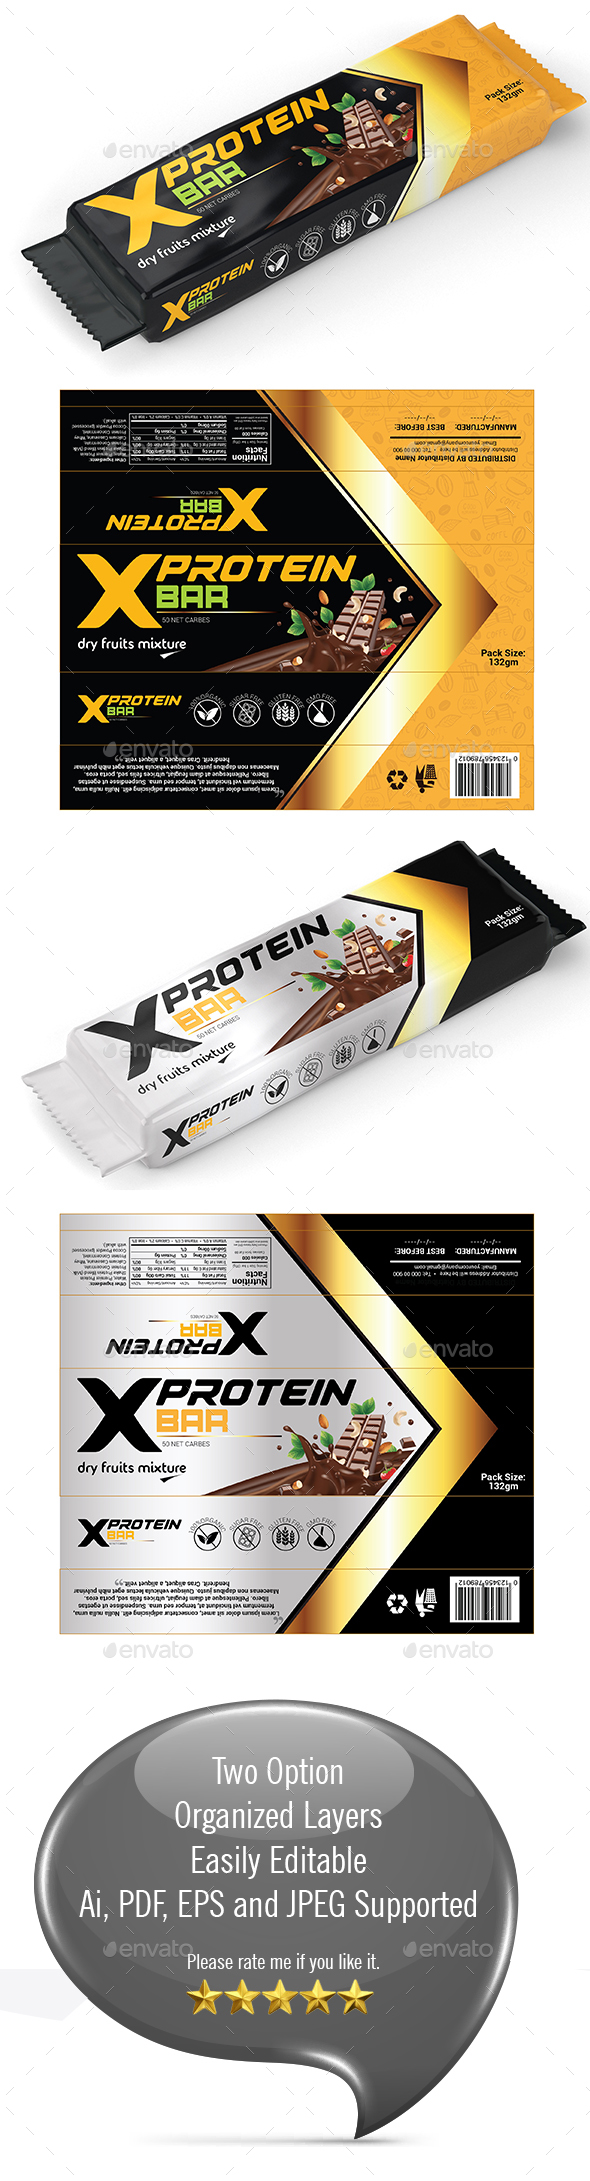 Protein Bar Wrapper Template - Packaging Print Templates